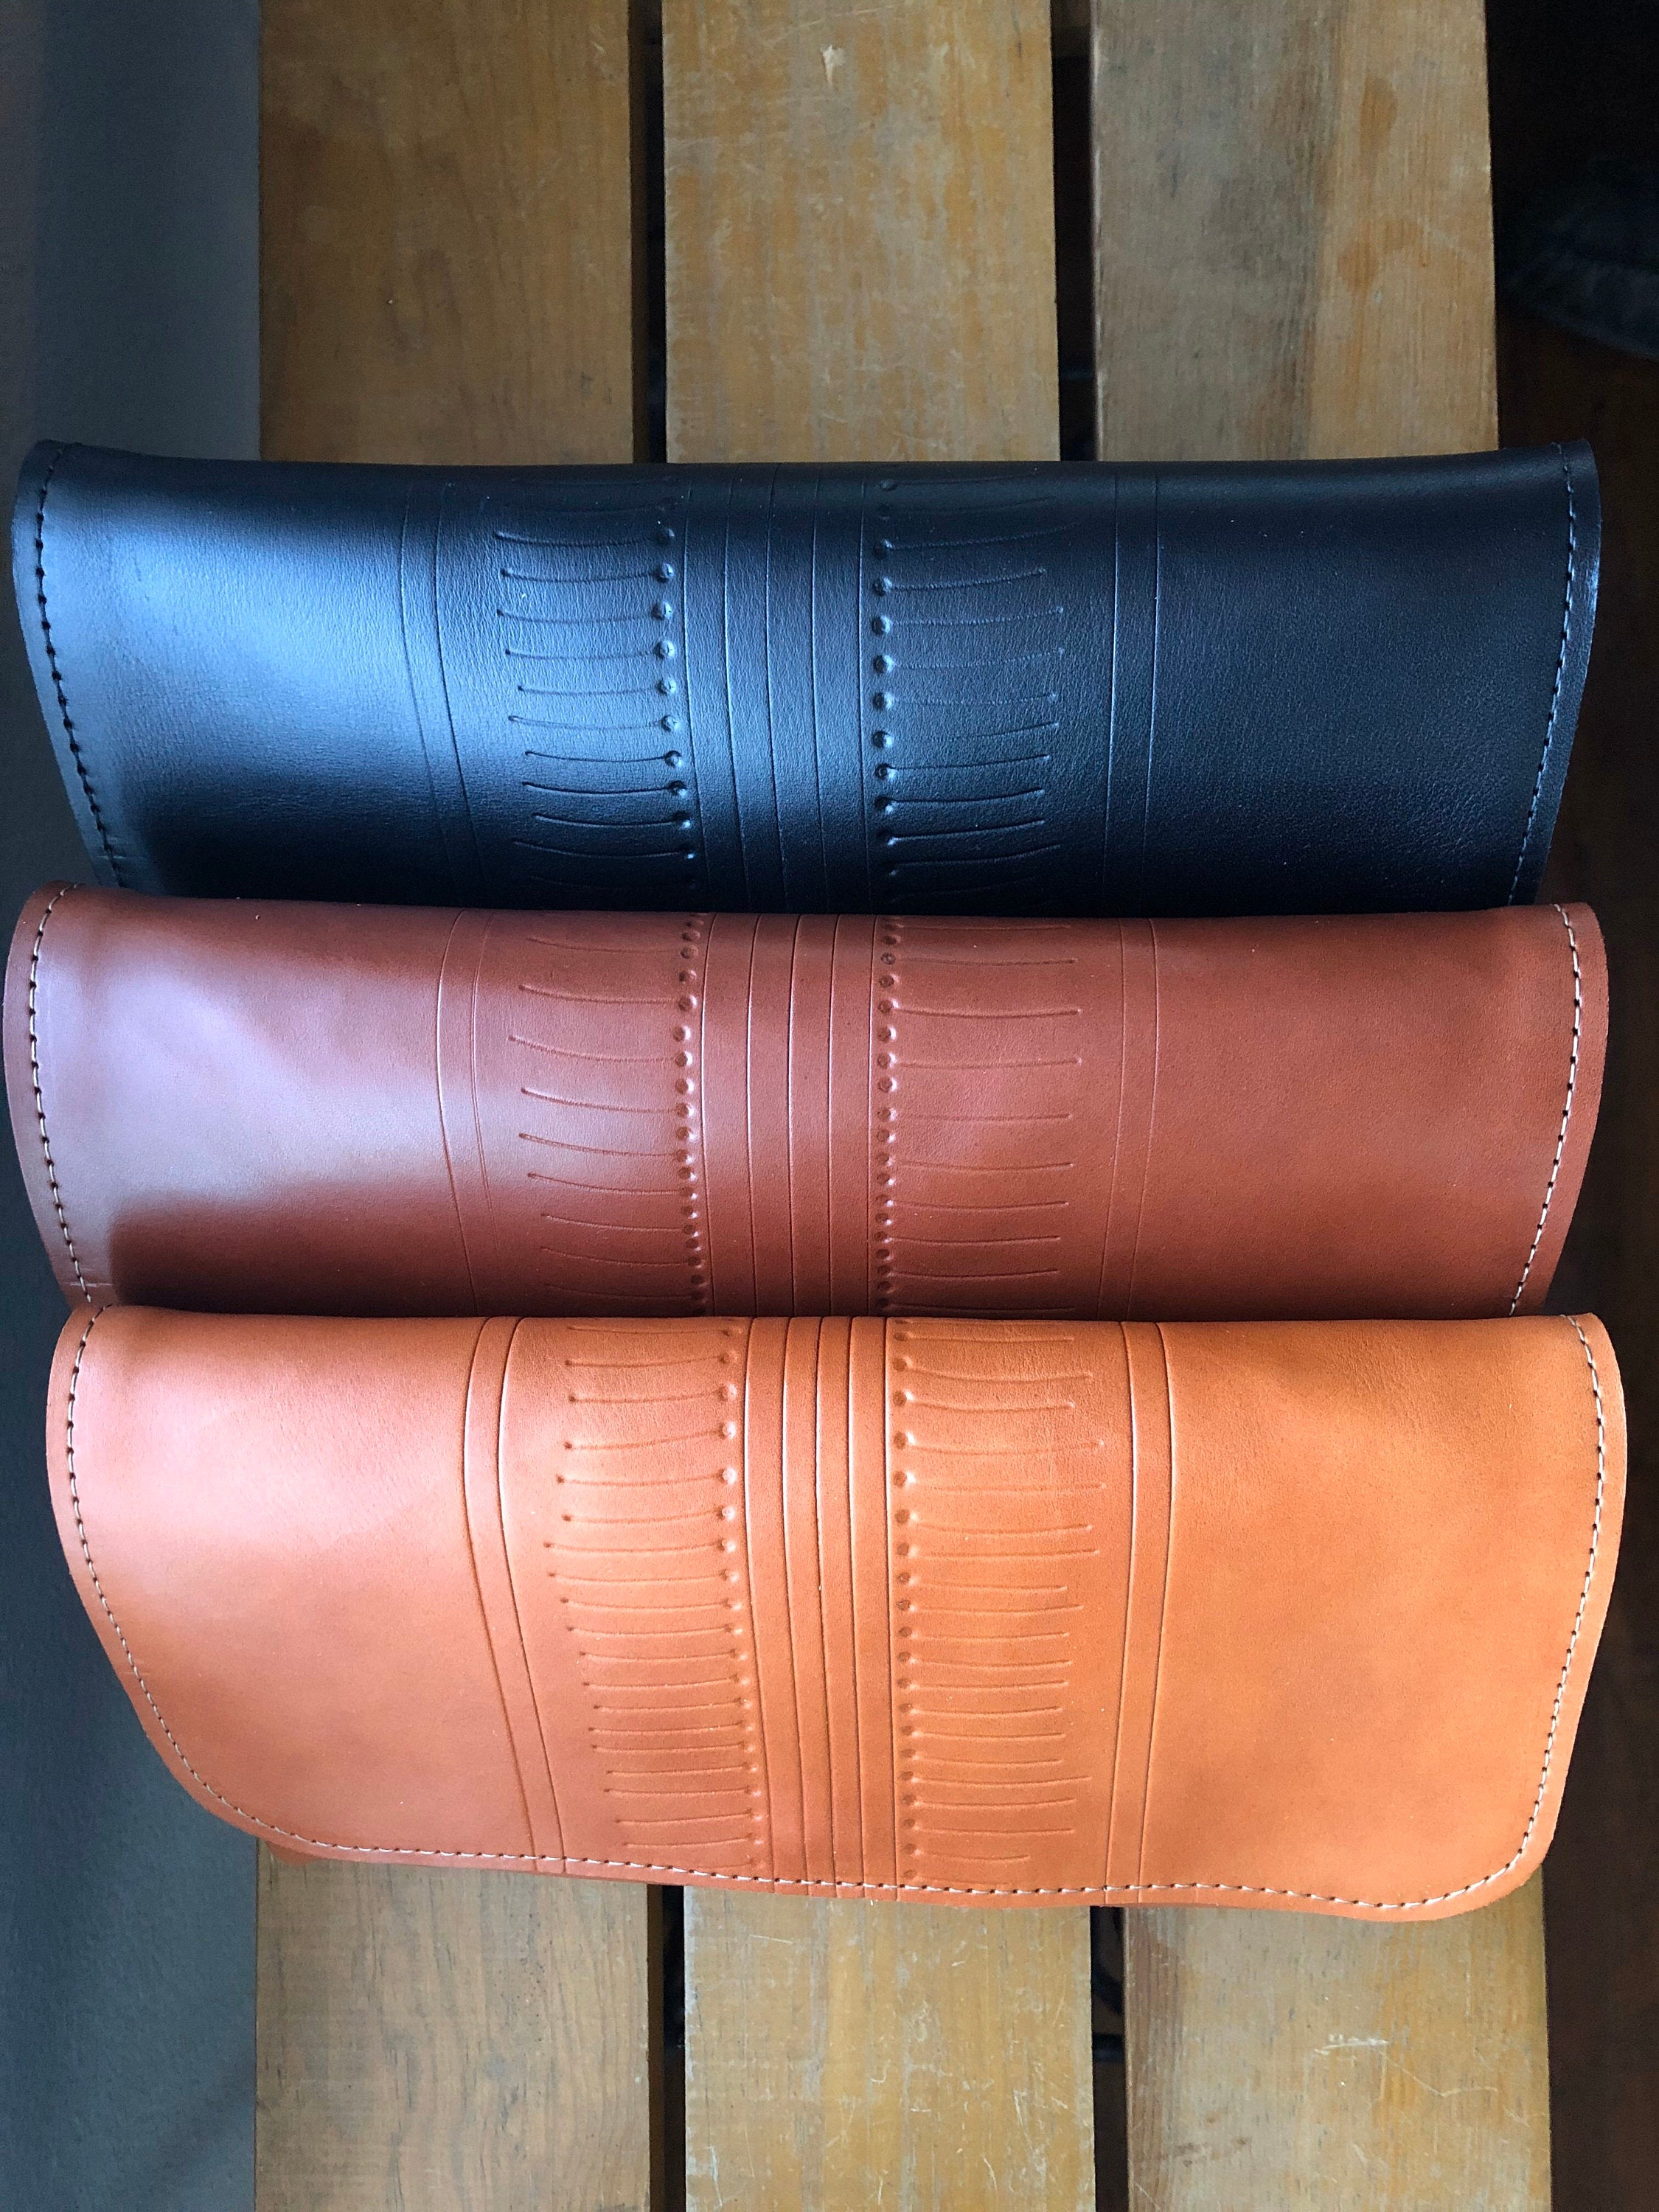 Row of three leather clutches, black, brown, and tan.